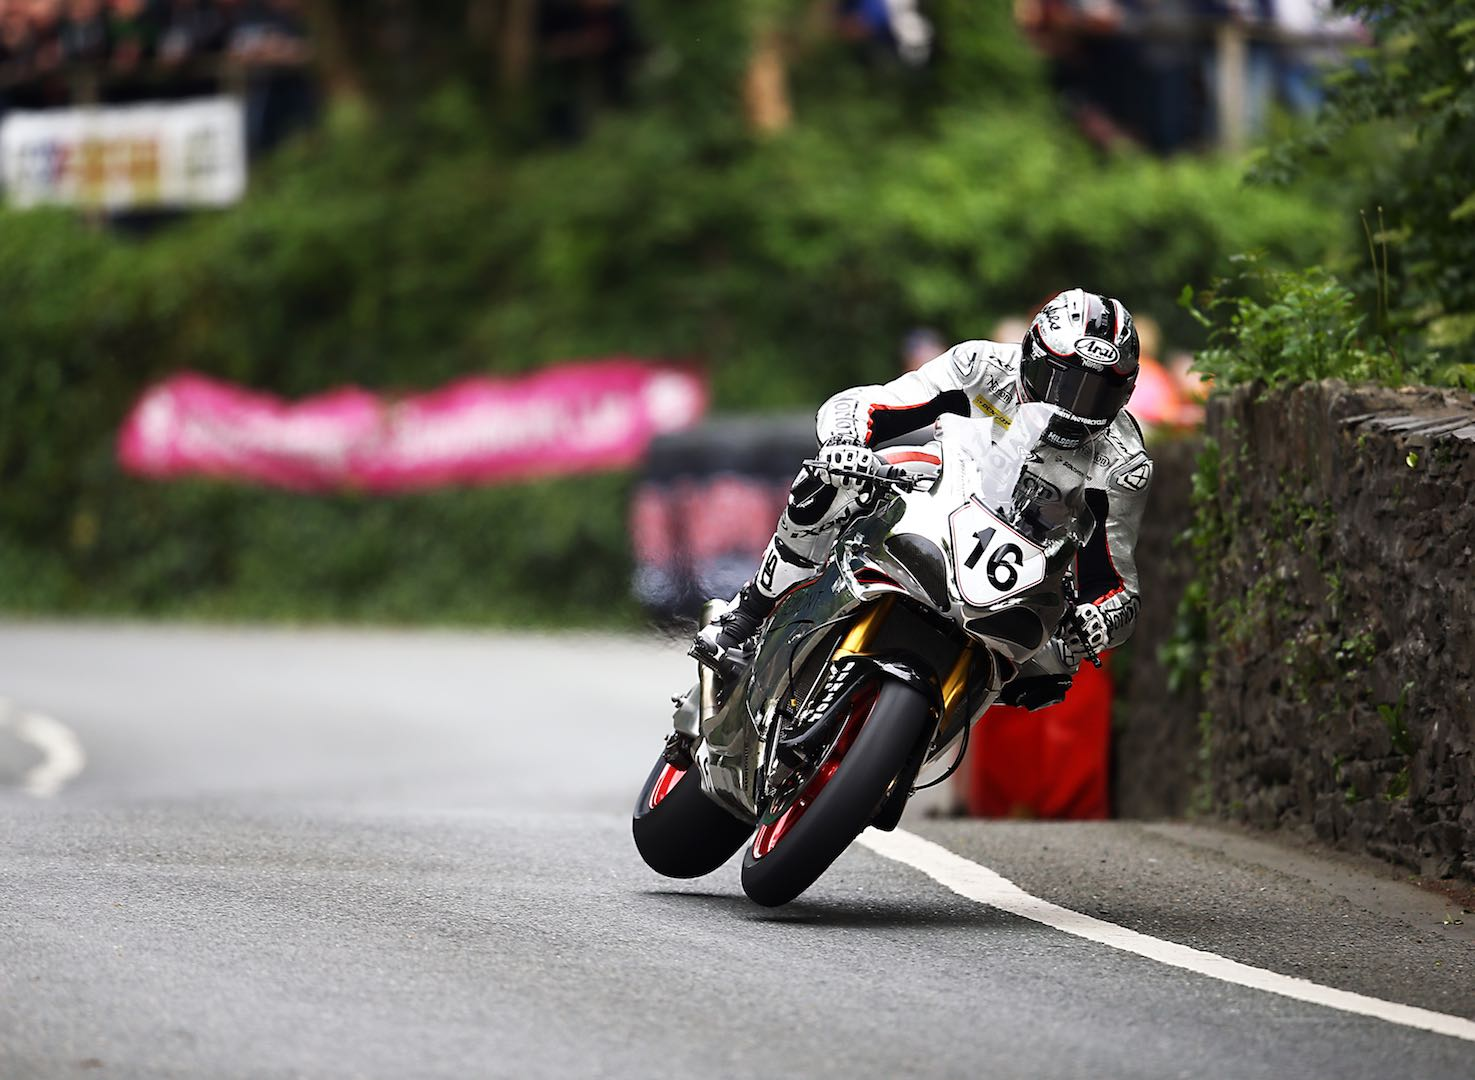 Josh Brookes Returns to Isle of Man TT with Norton for 2018